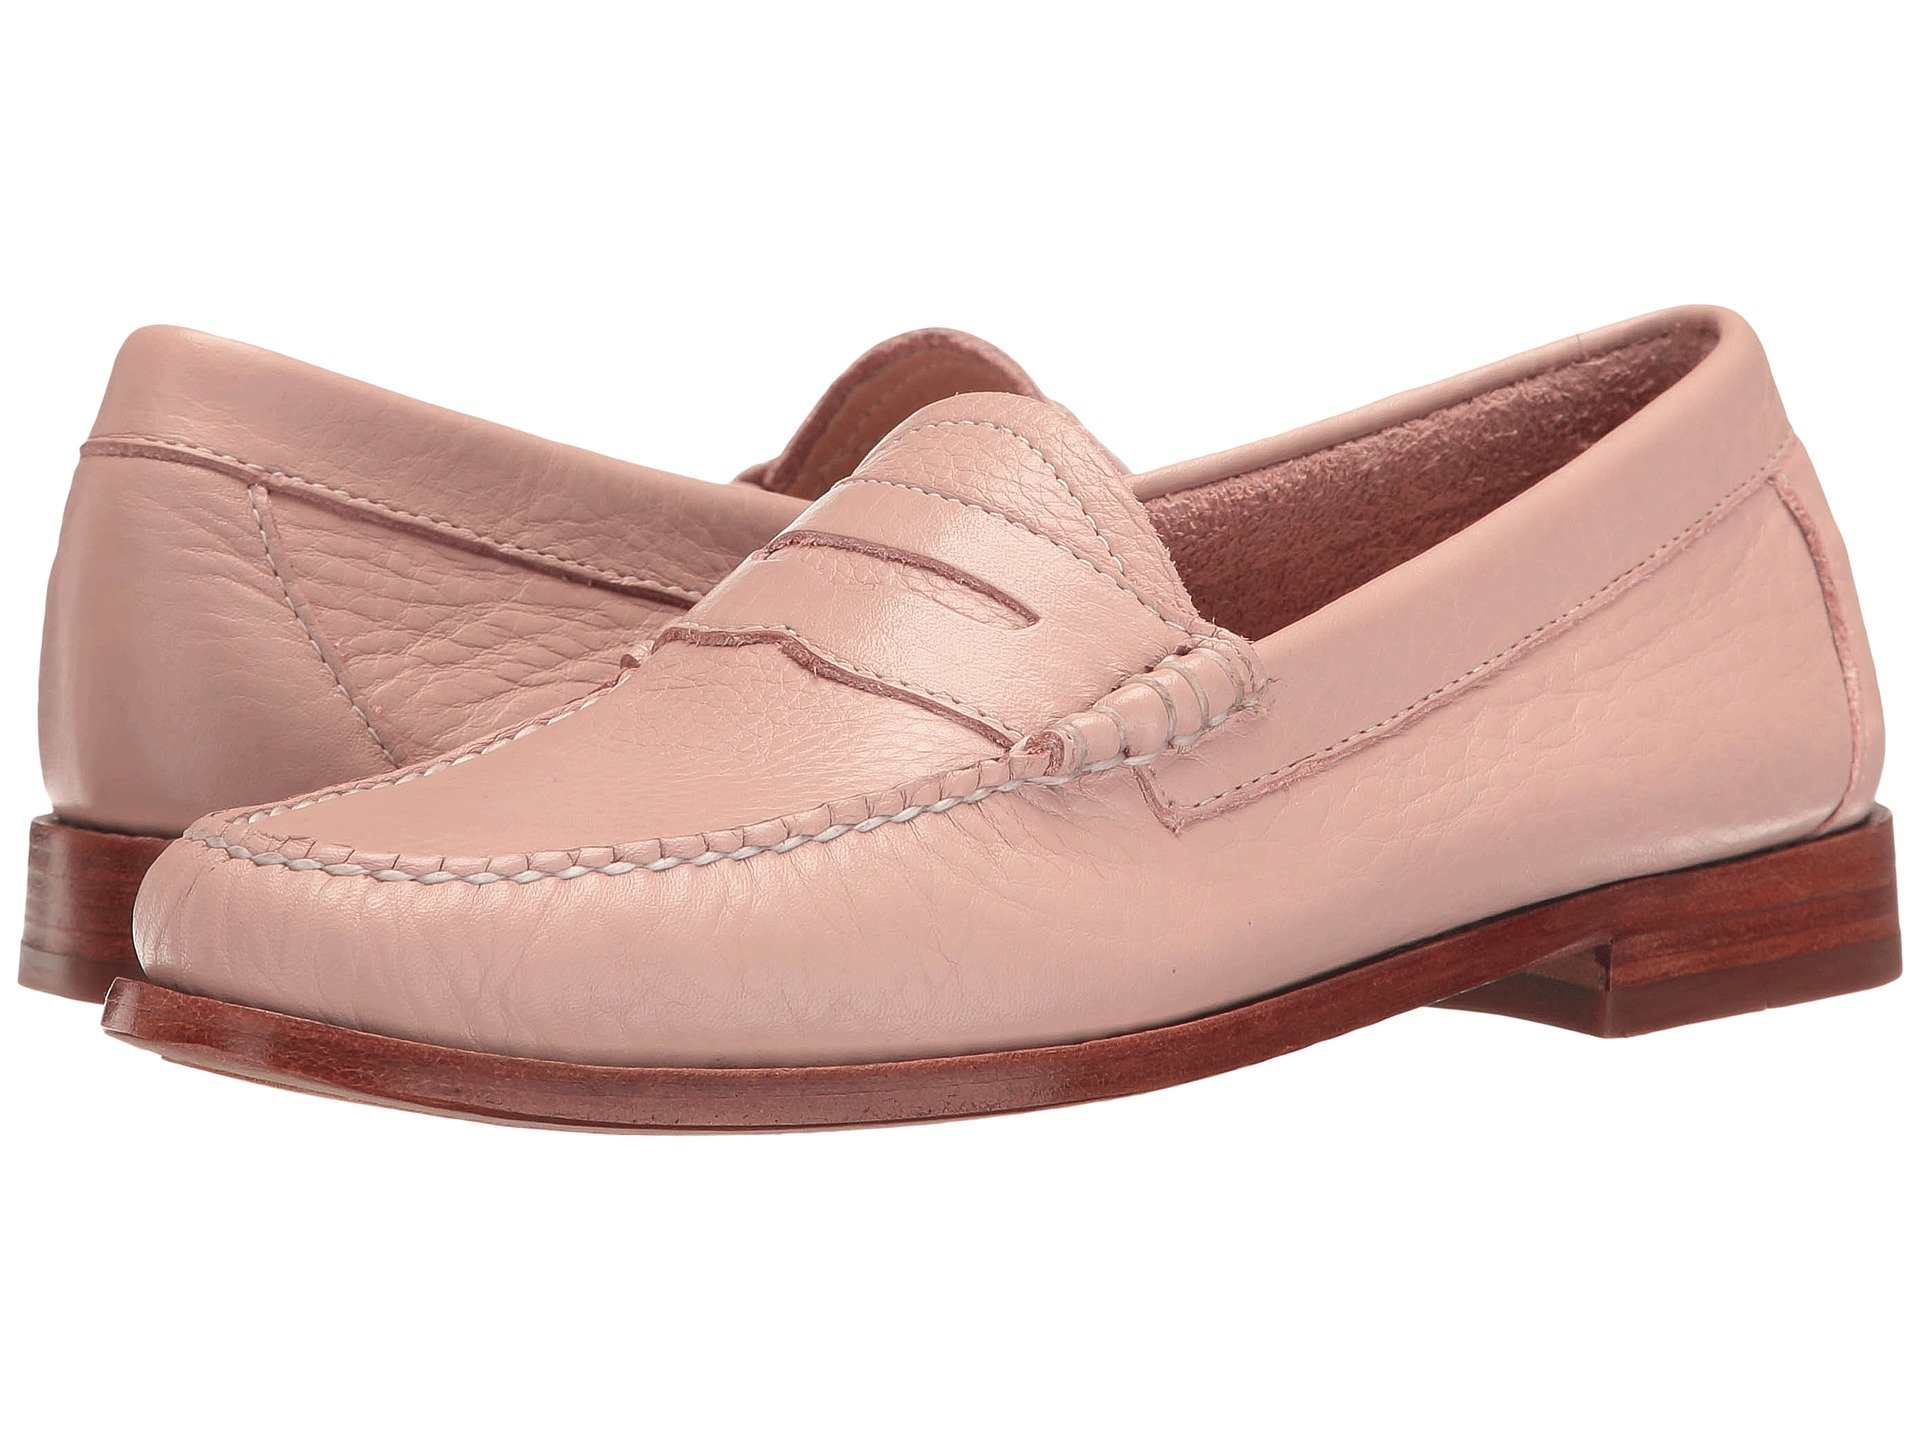 G.H.BASS&CO Whitney Weejuns, Blush Pink Soft Tumbled Leather in Neutrals